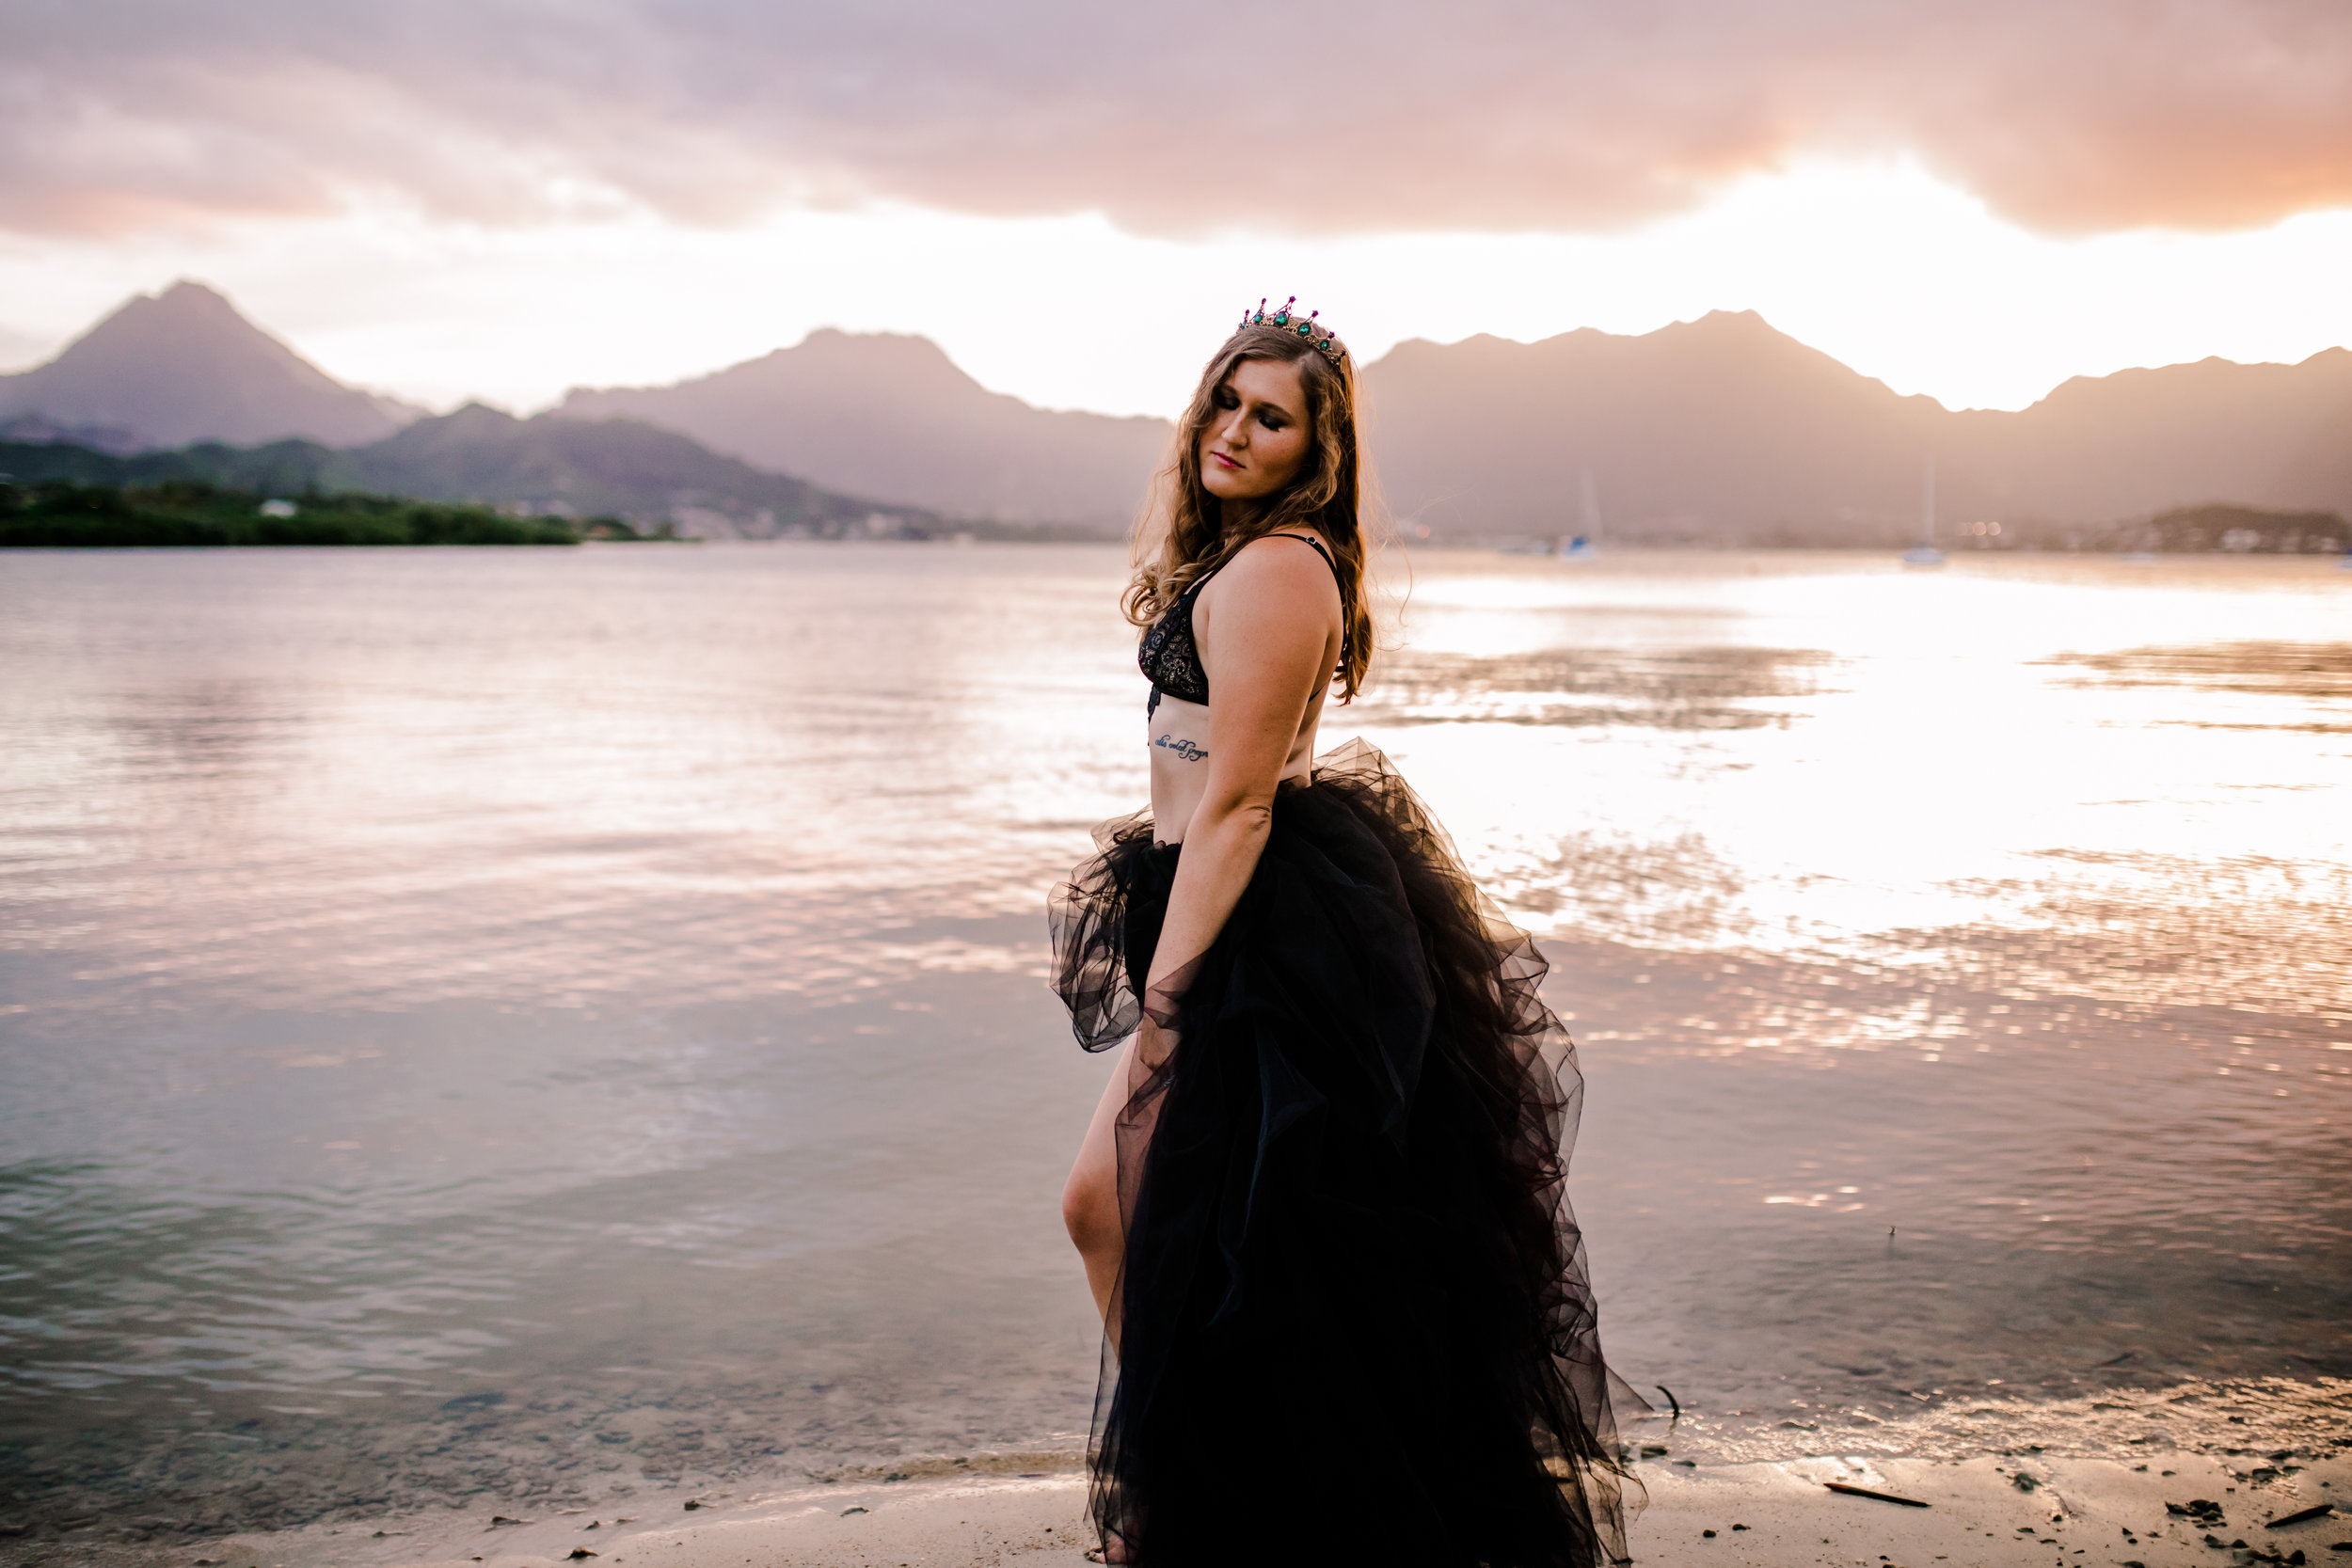 Beauty and Boudoir Photography, woman in black lingerie on the lake shore